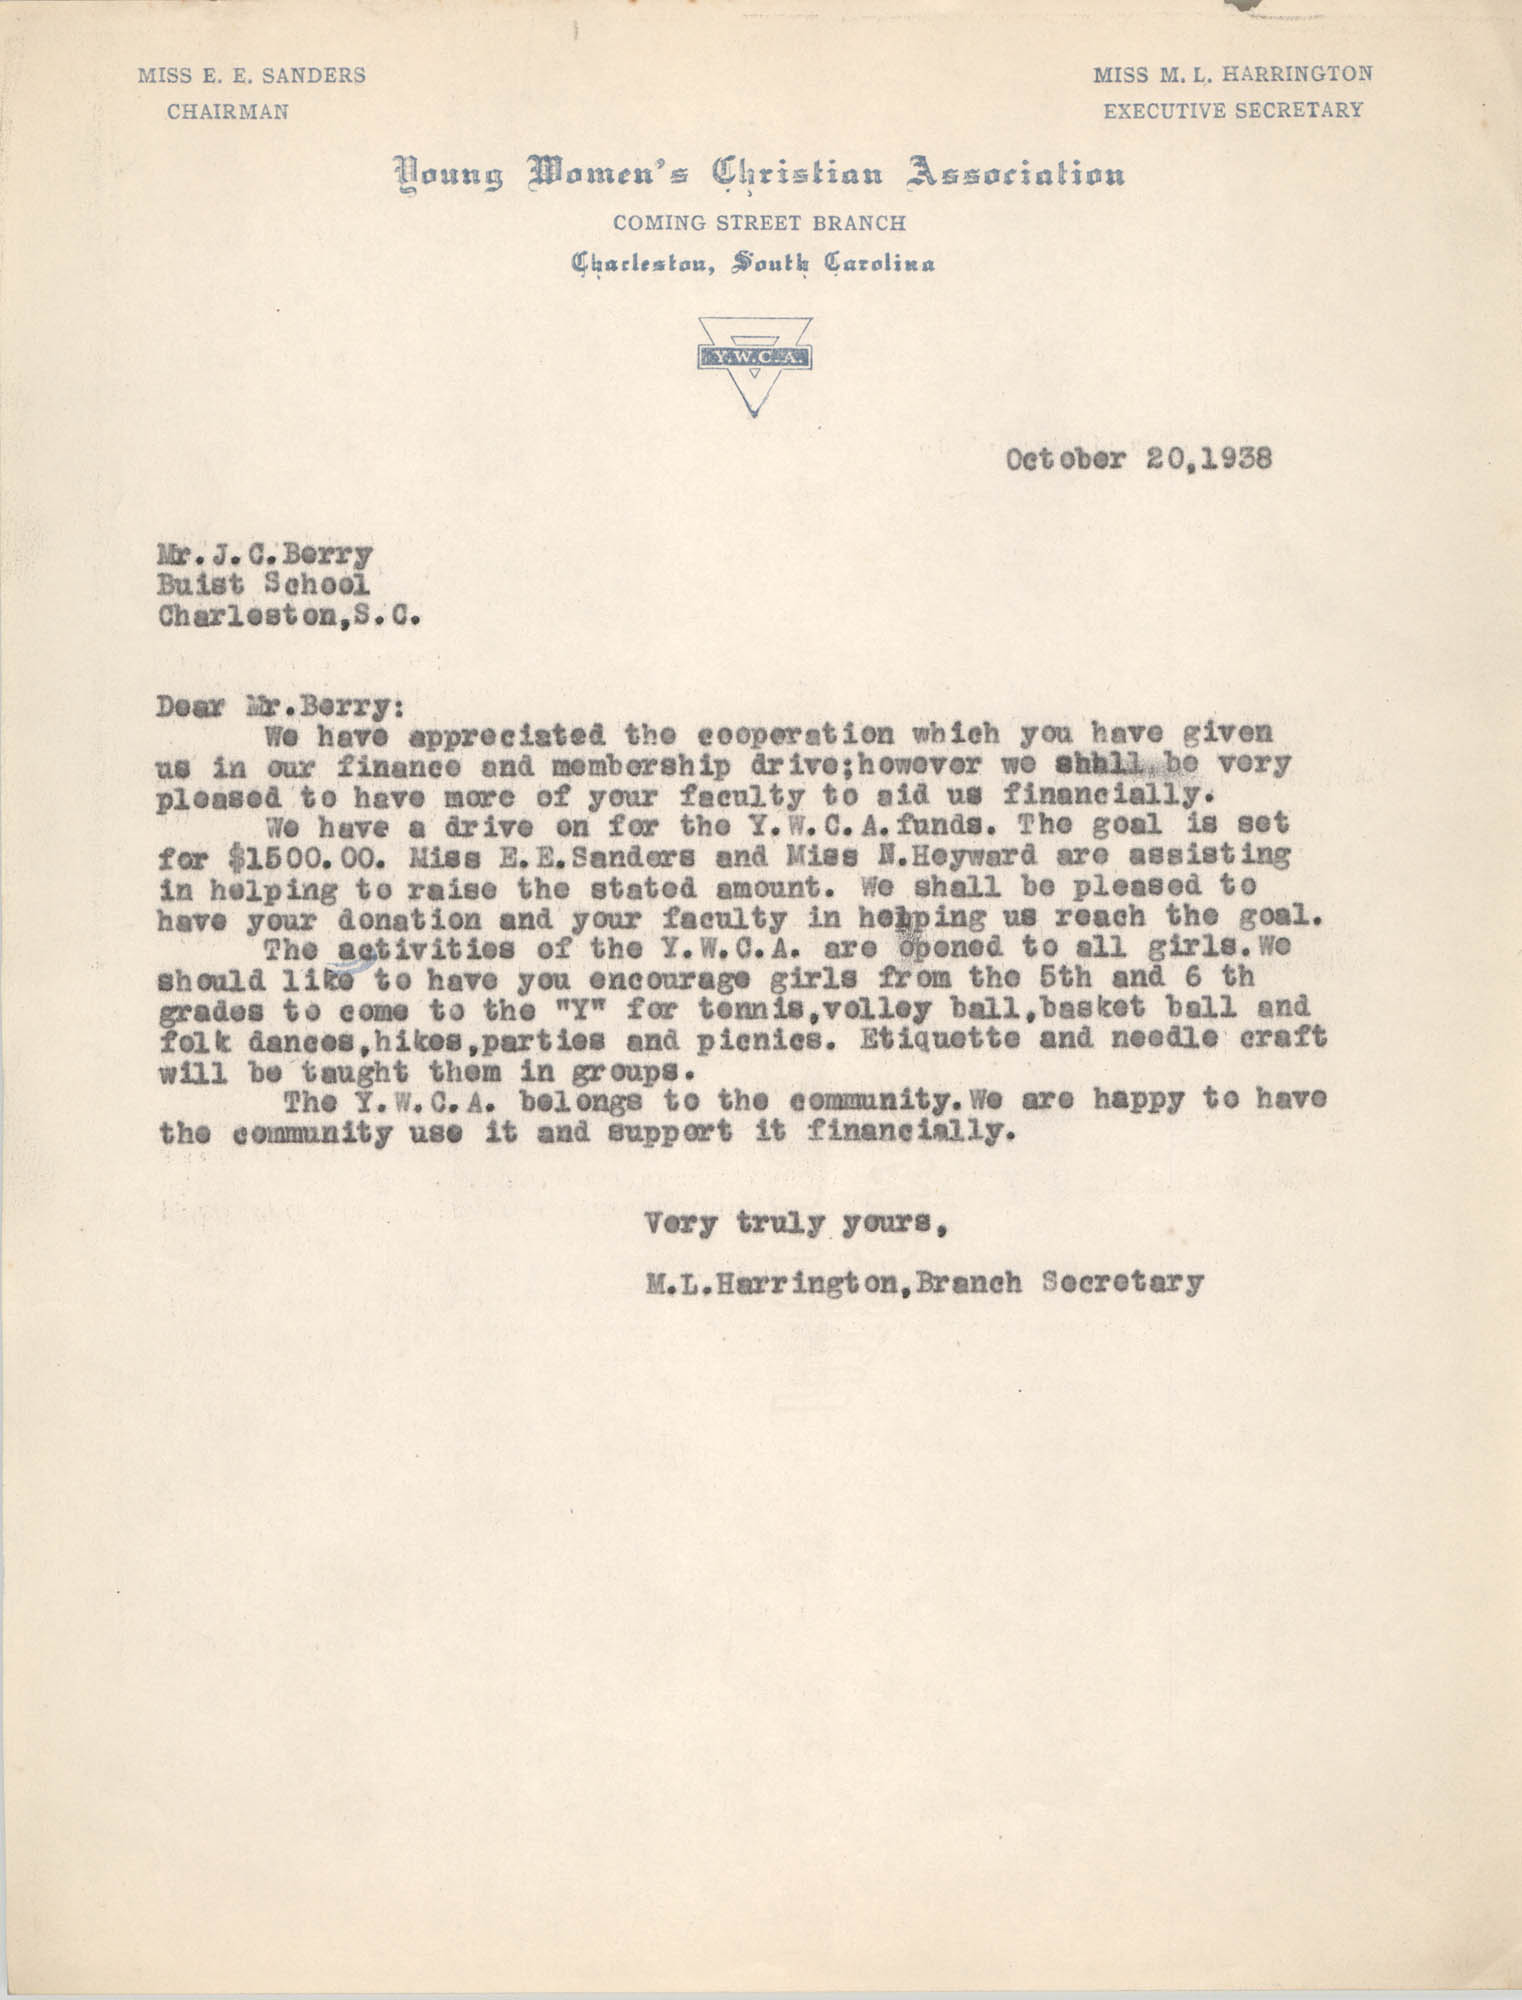 Letter from M. L. Harrington to J. C. Berry, October 20, 1938